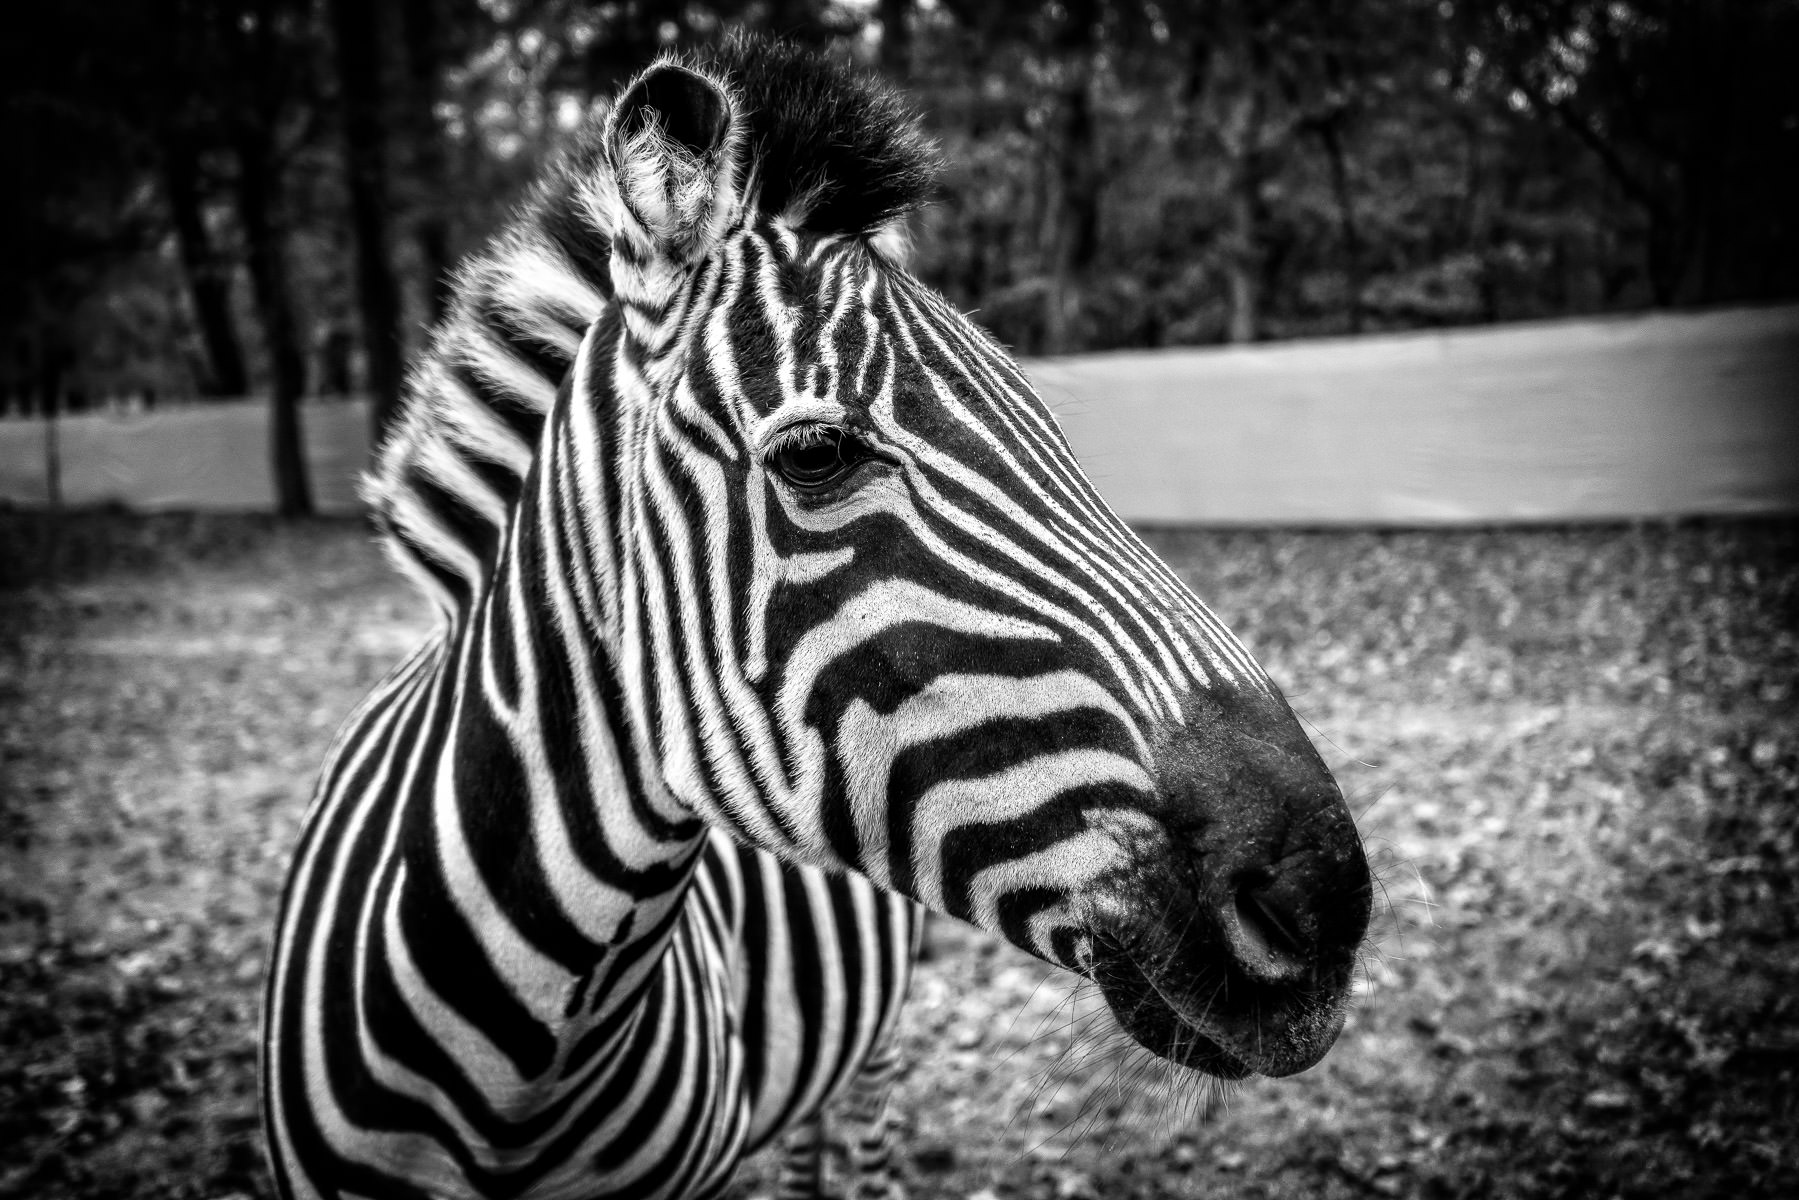 A zebra spotted at Cherokee Trace Drive-Thru Safari near Jacksonville, Texas.